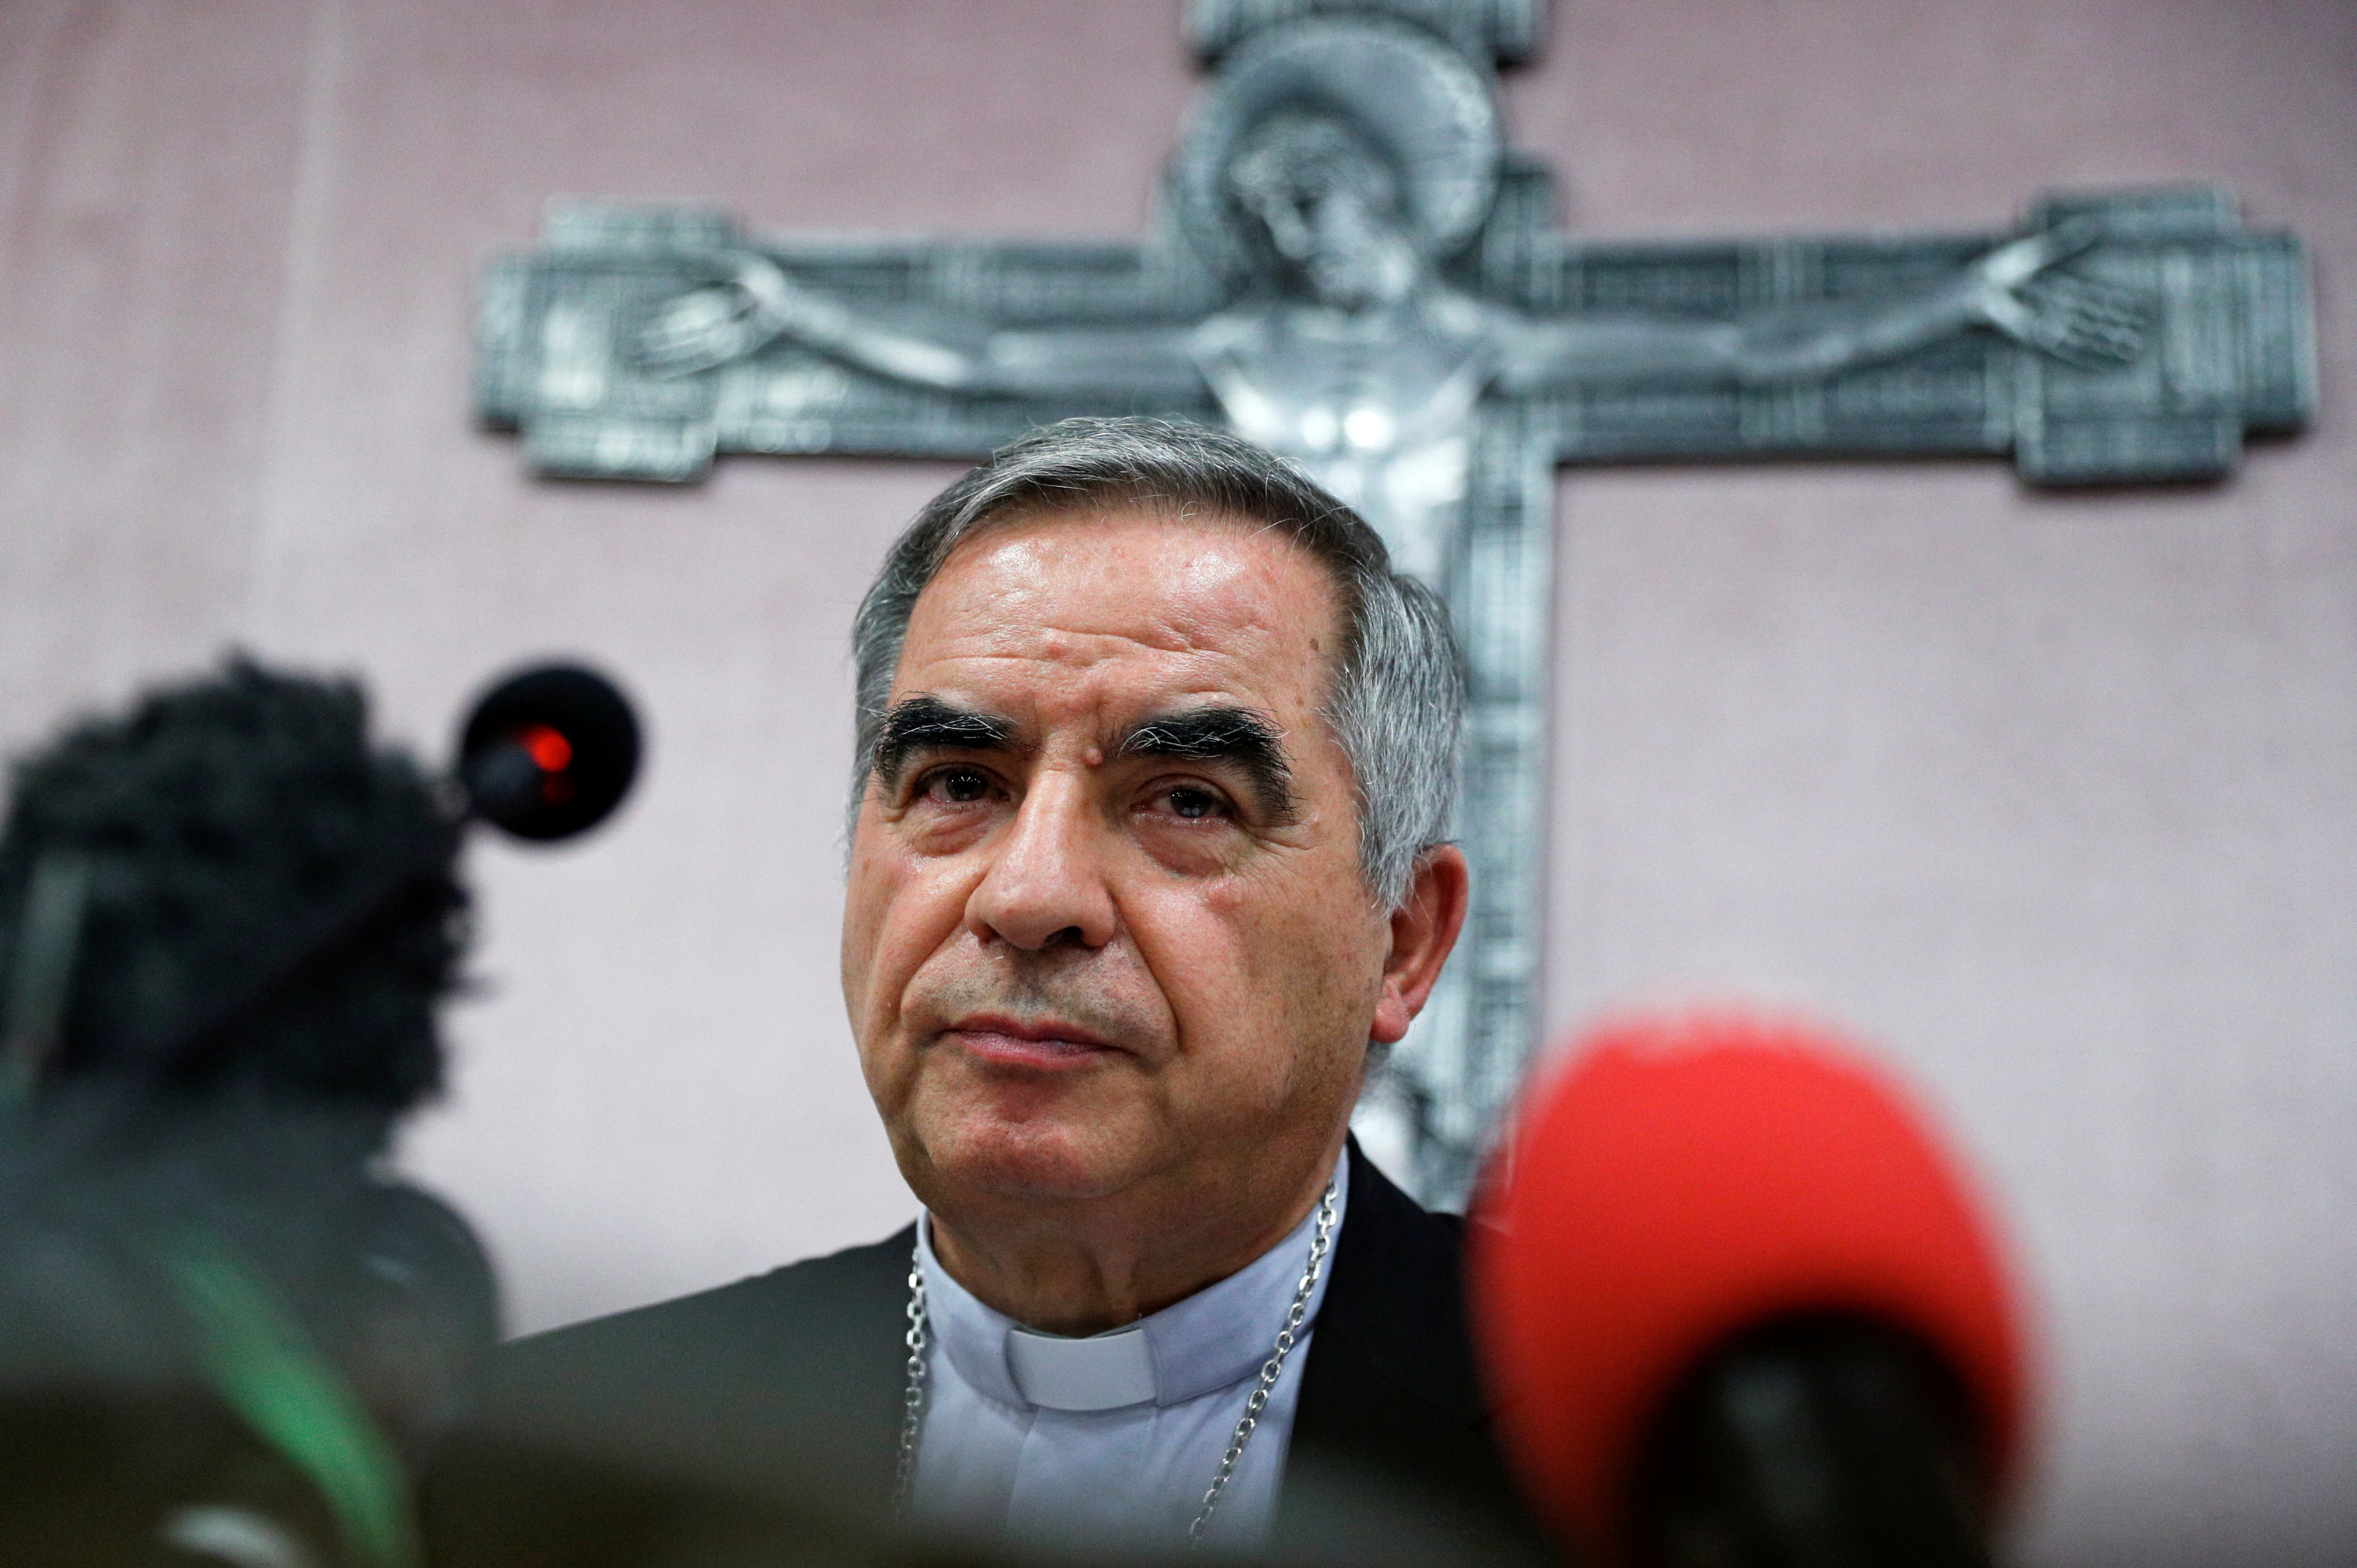 Cardinal Giovanni Angelo Becciu, who has been caught up in a real estate scandal, pauses as he speaks to the media a day after he resigned suddenly and gave up his right to take part in an eventual conclave to elect a pope, near the Vatican, in Rome, Italy, September 25, 2020. REUTERS/Guglielmo Mangiapane/File Photo